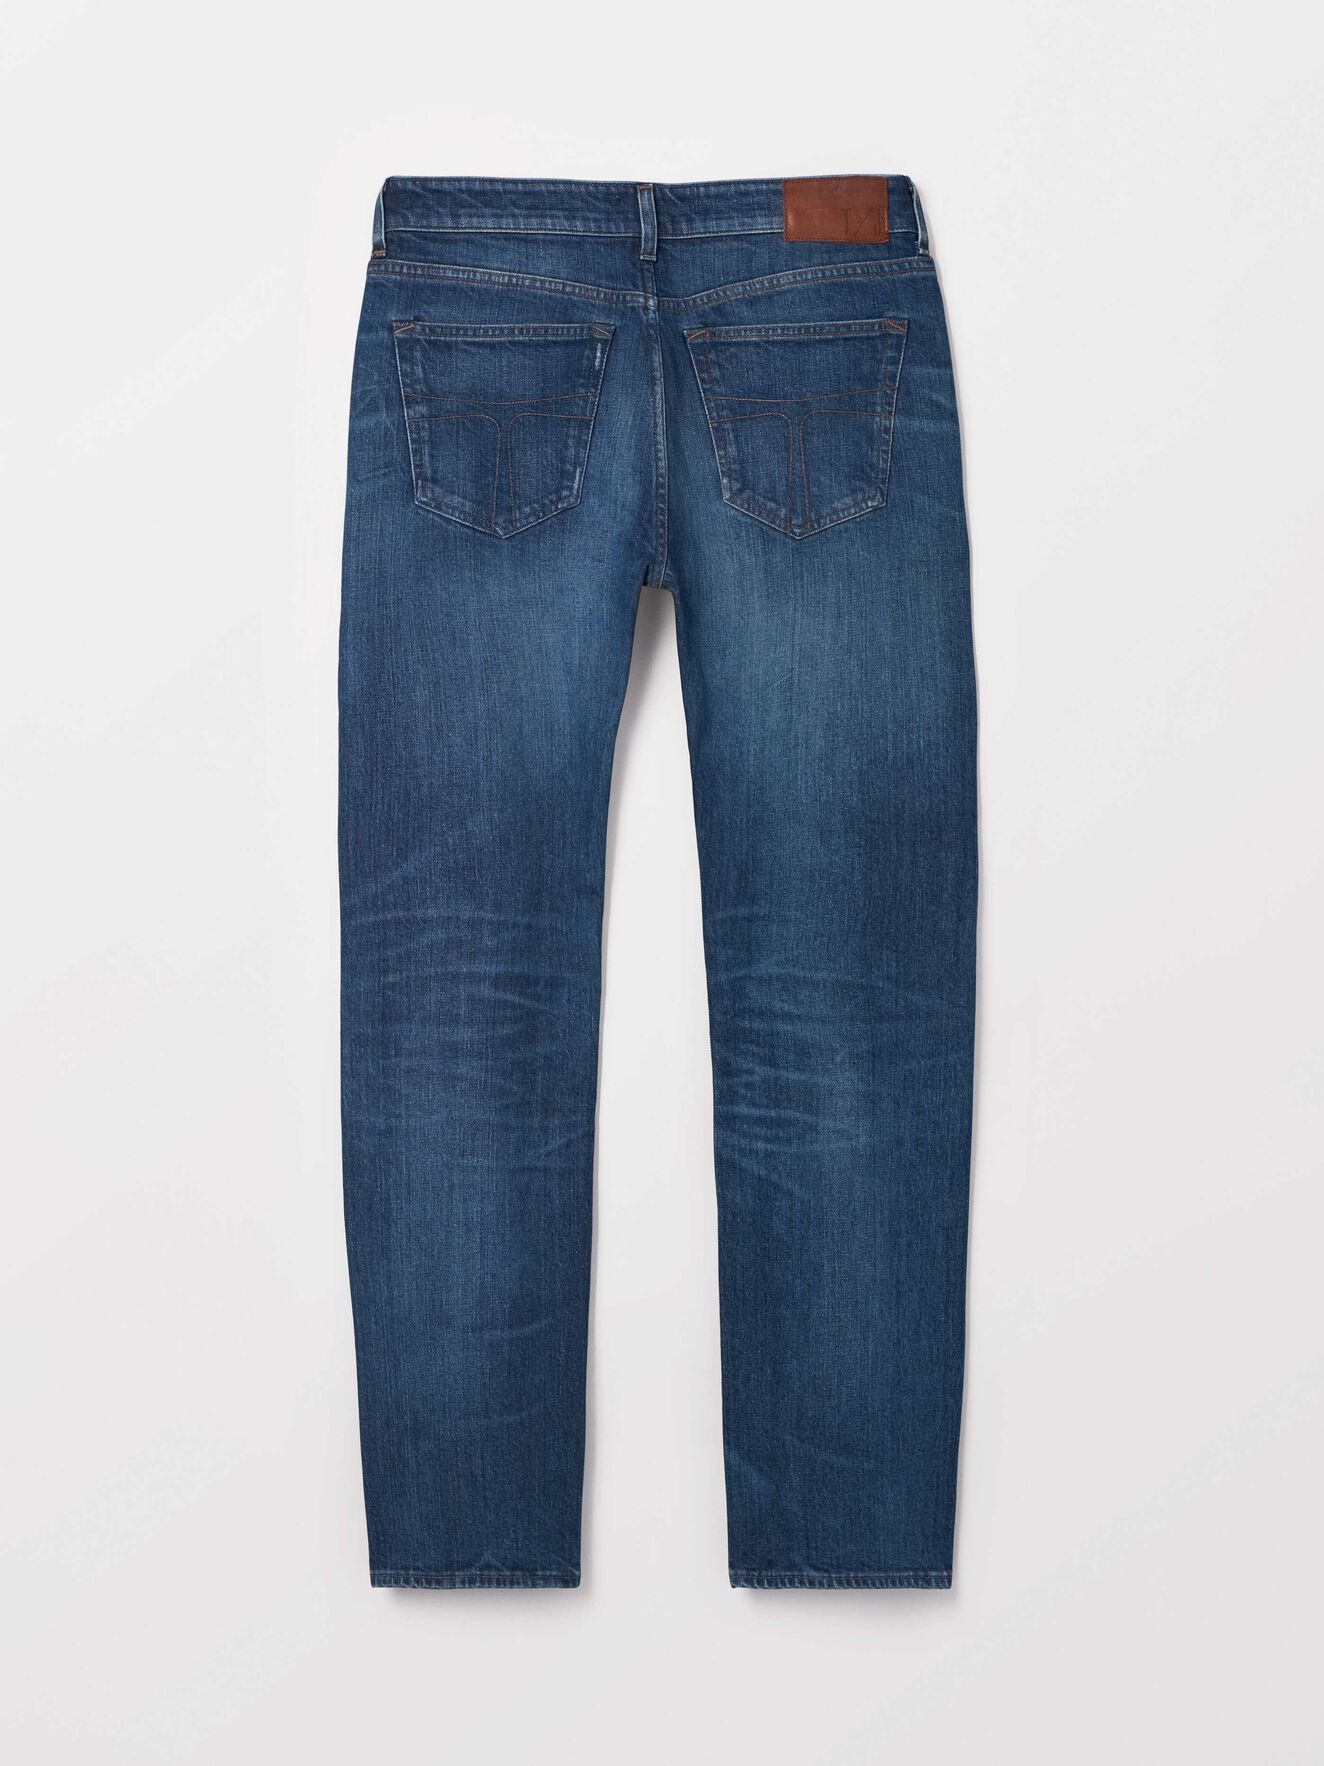 Hein Jeans in Medium Blue from Tiger of Sweden